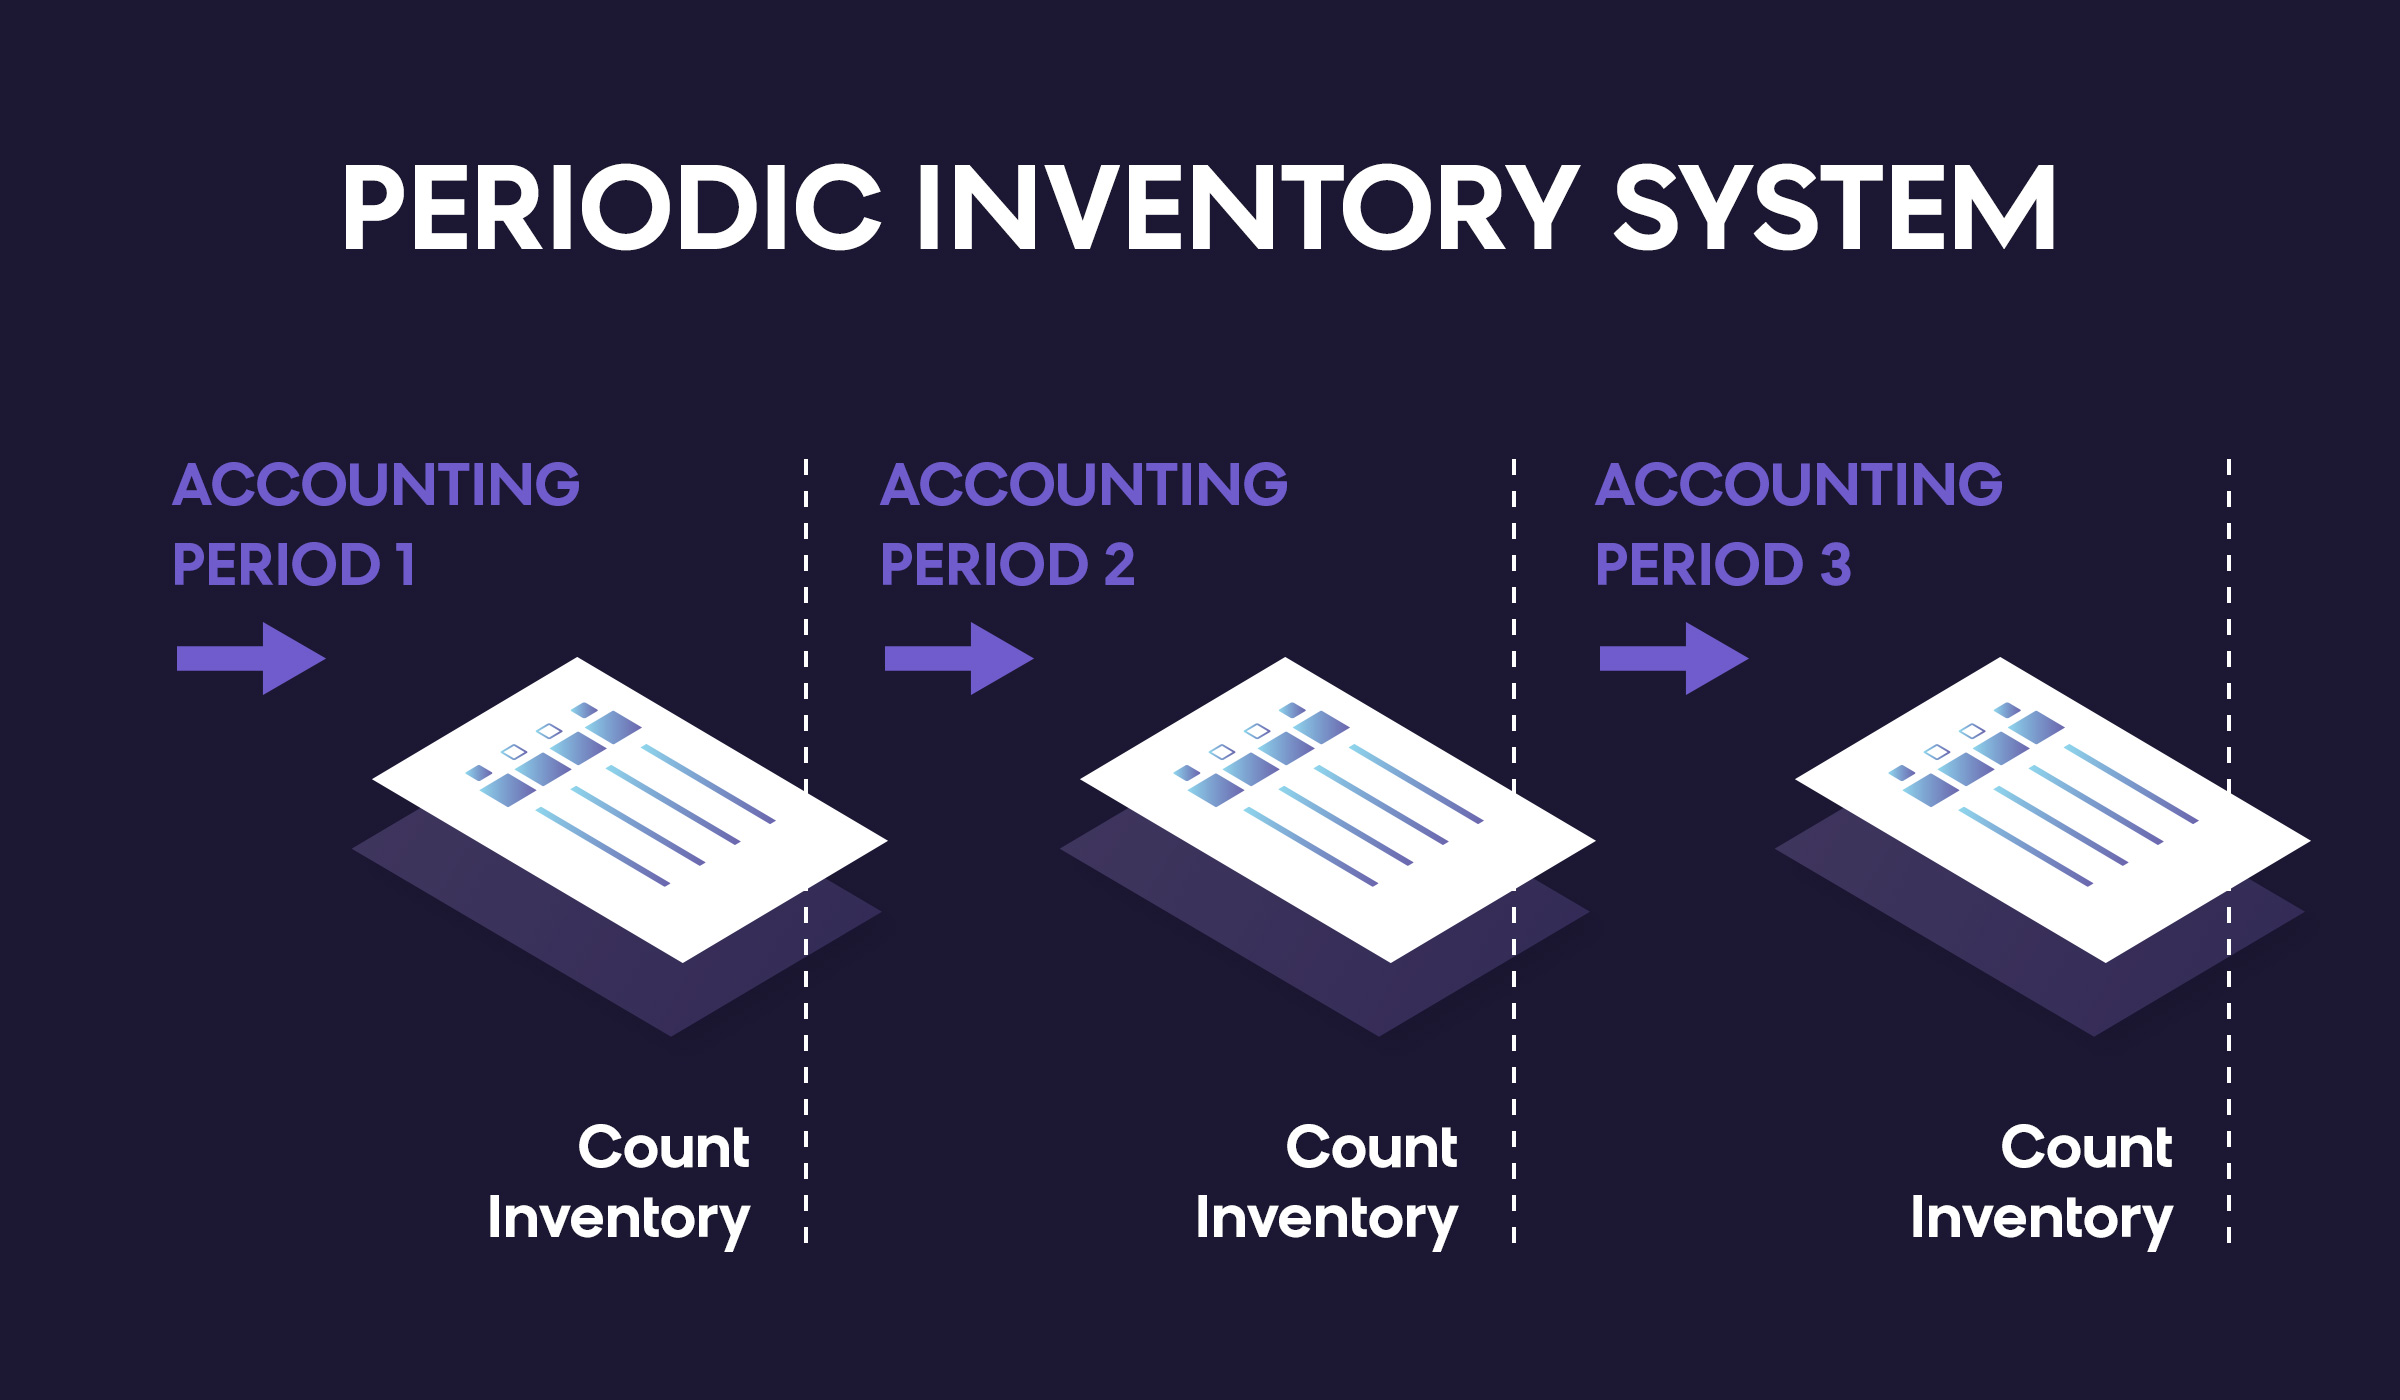 What is a periodic inventory system?